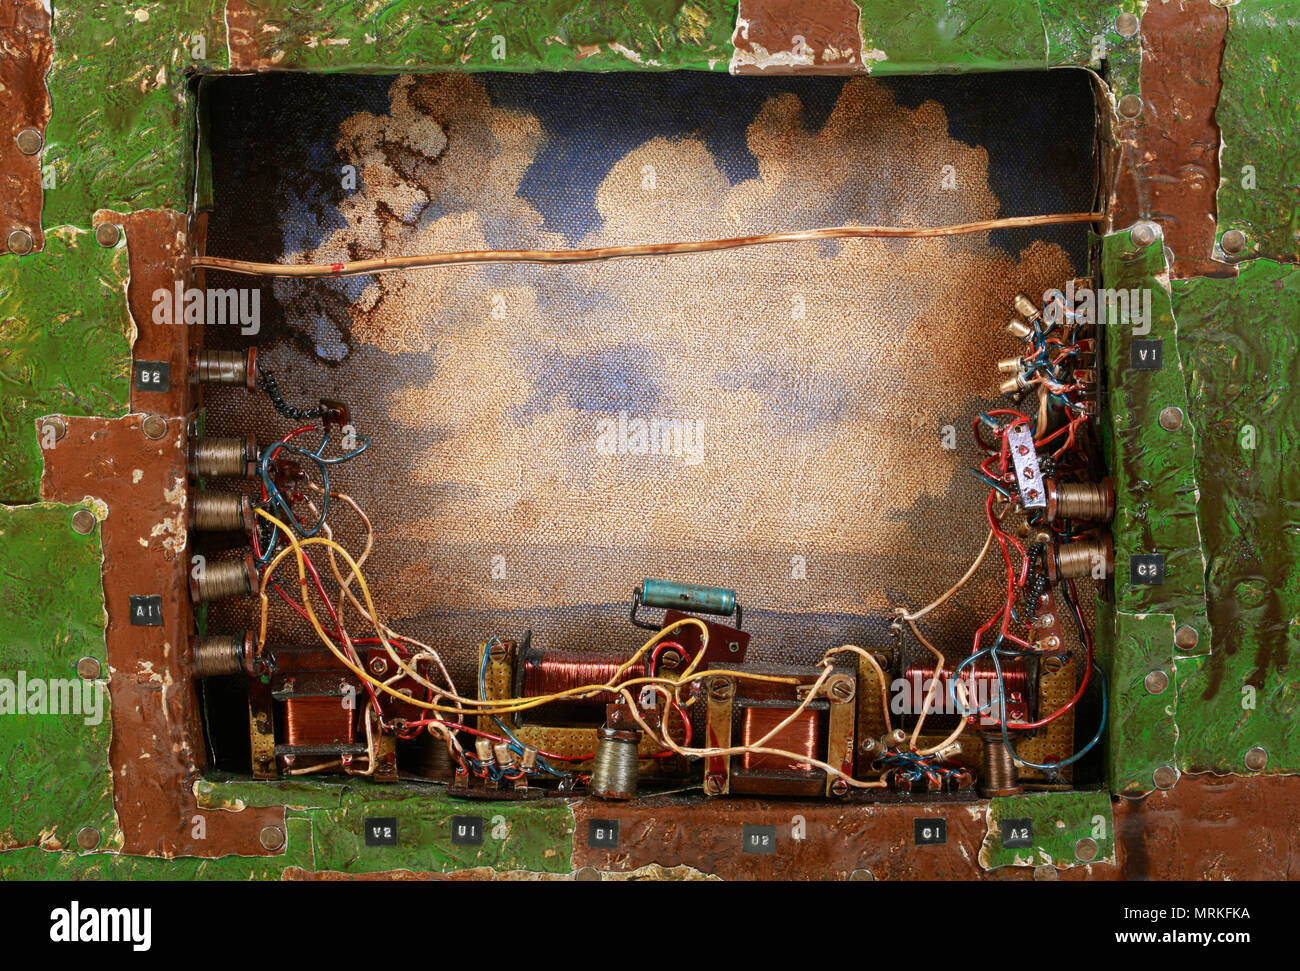 Post Apocalyptic Electronic Control Box Console Frame - Stock Image